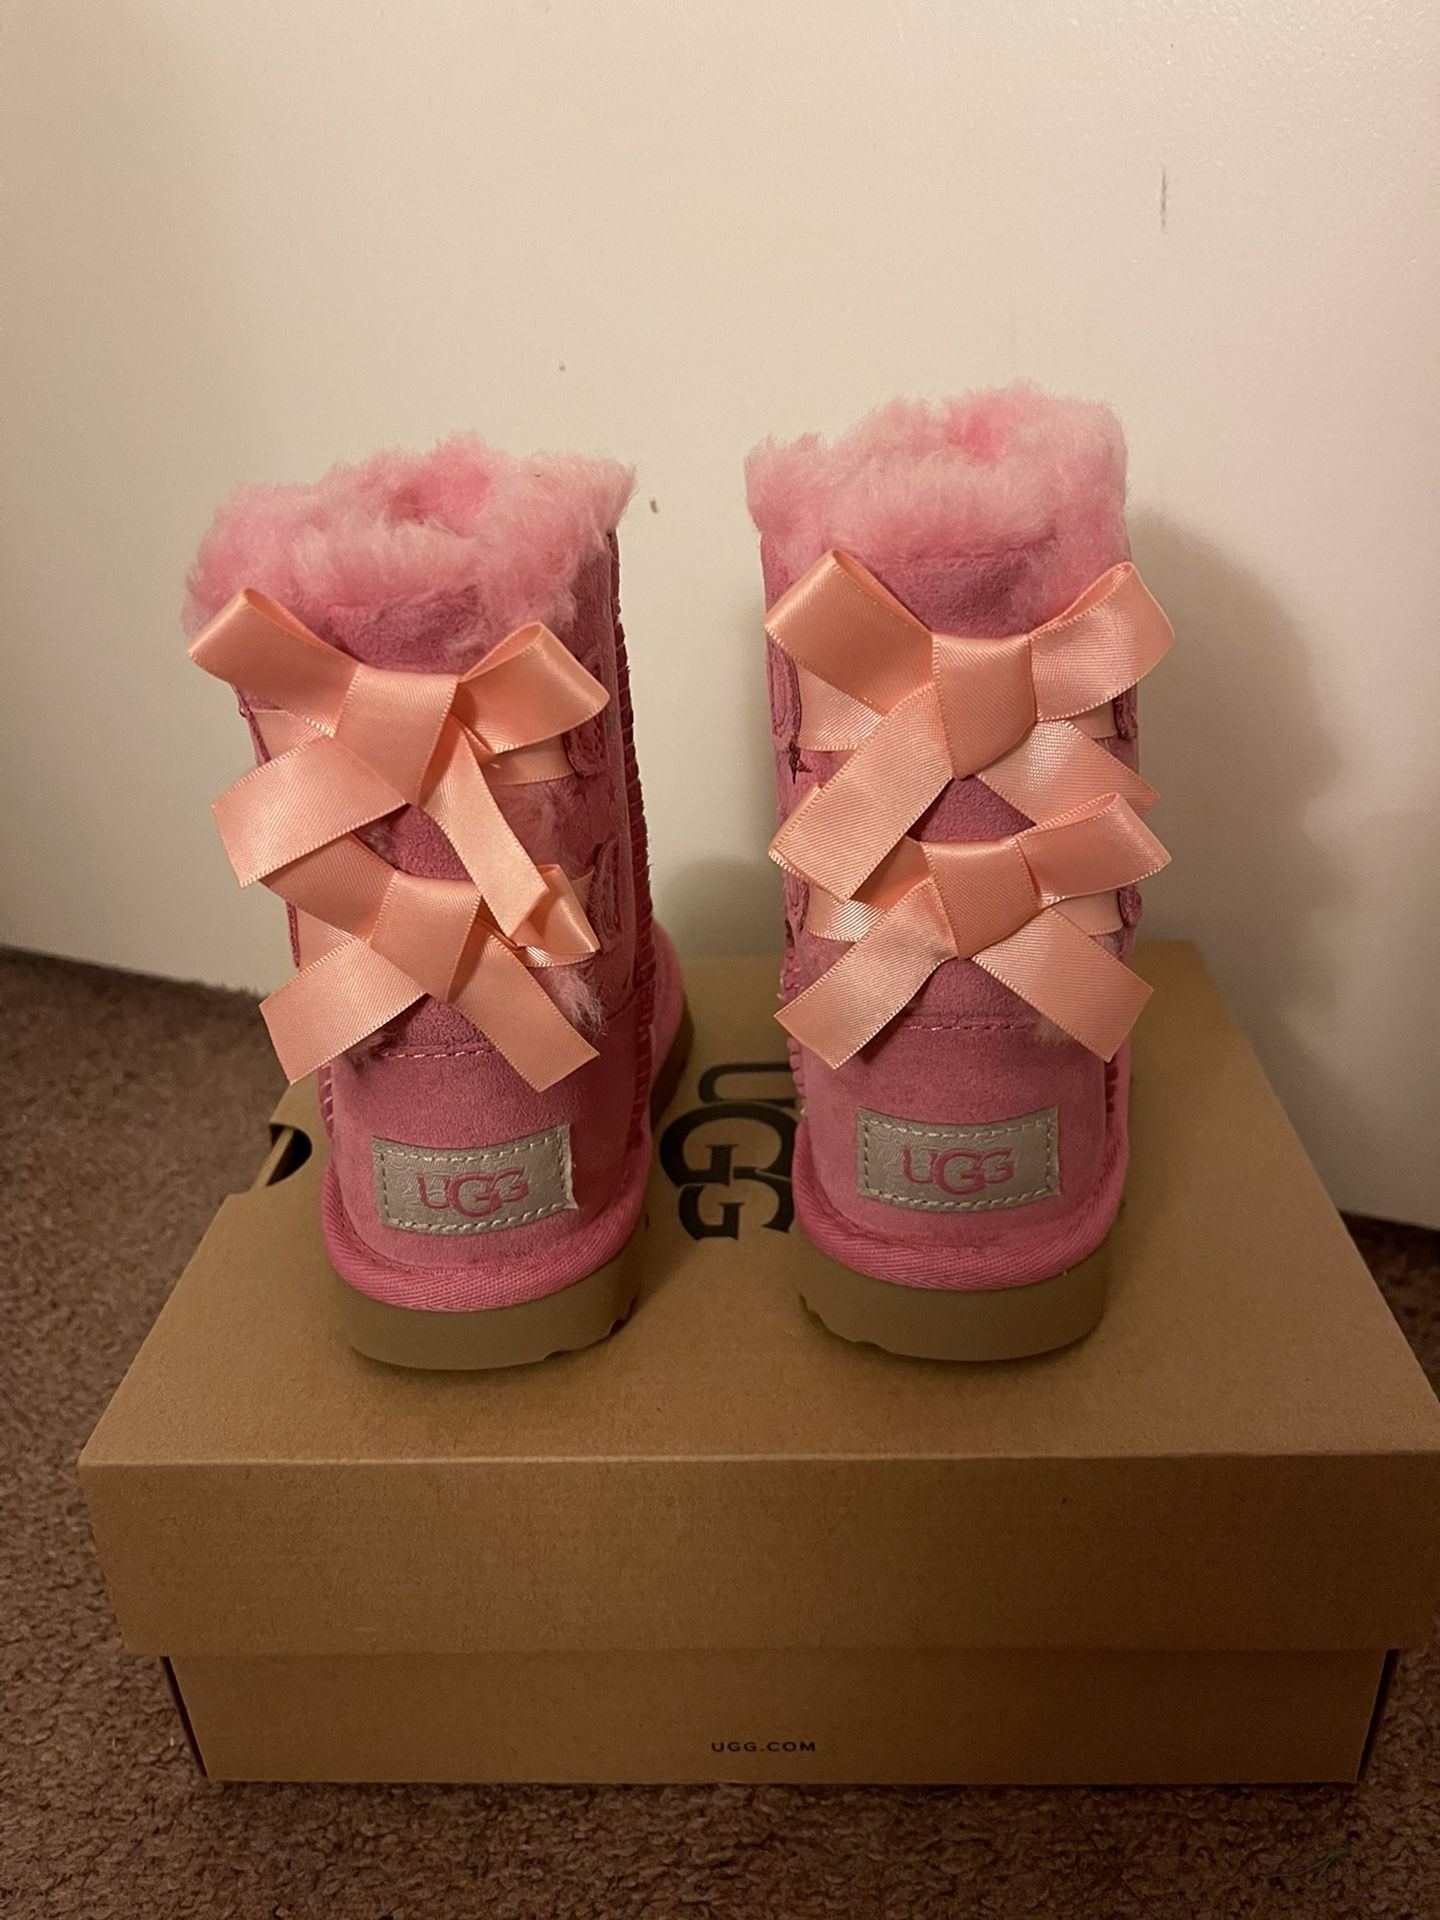 100% Authentic Brand New in Box UGG Bailey Bow Moon and Stars Boots / Color: Pink / Toddler size 6, 7, 8